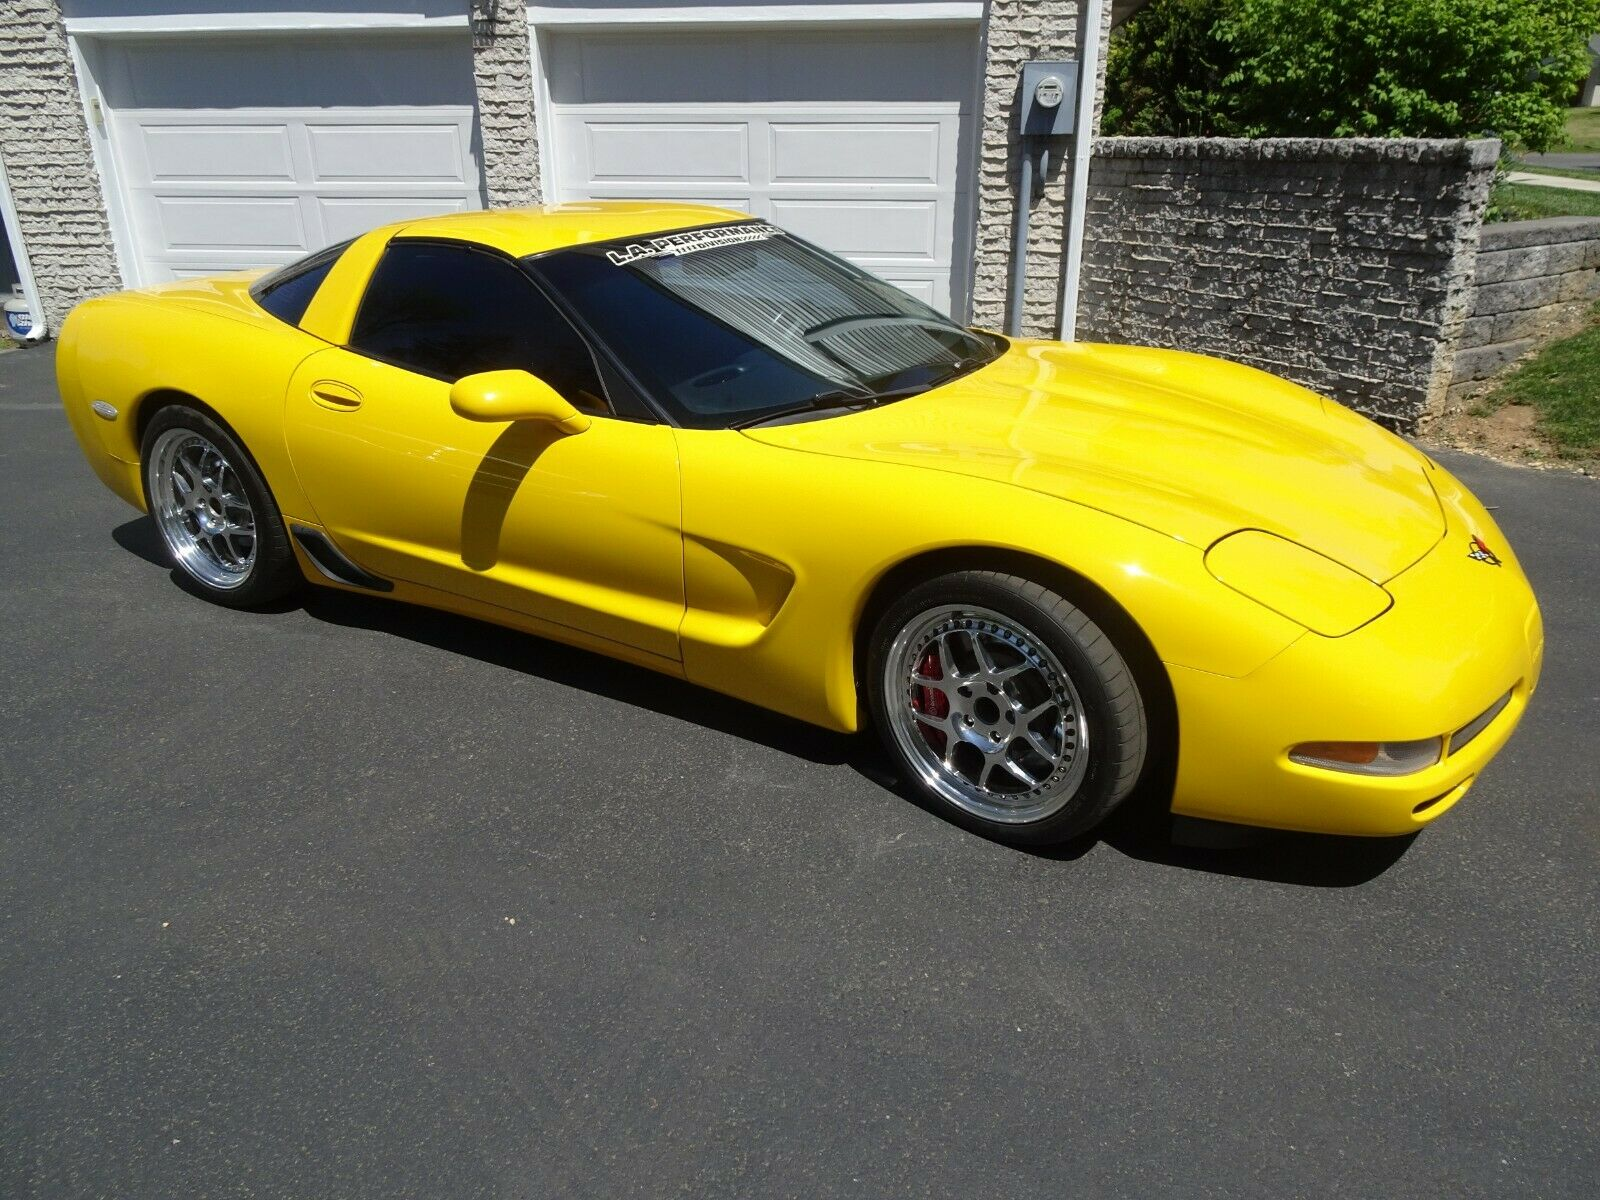 2001 Yellow Chevrolet Corvette   | C5 Corvette Photo 1